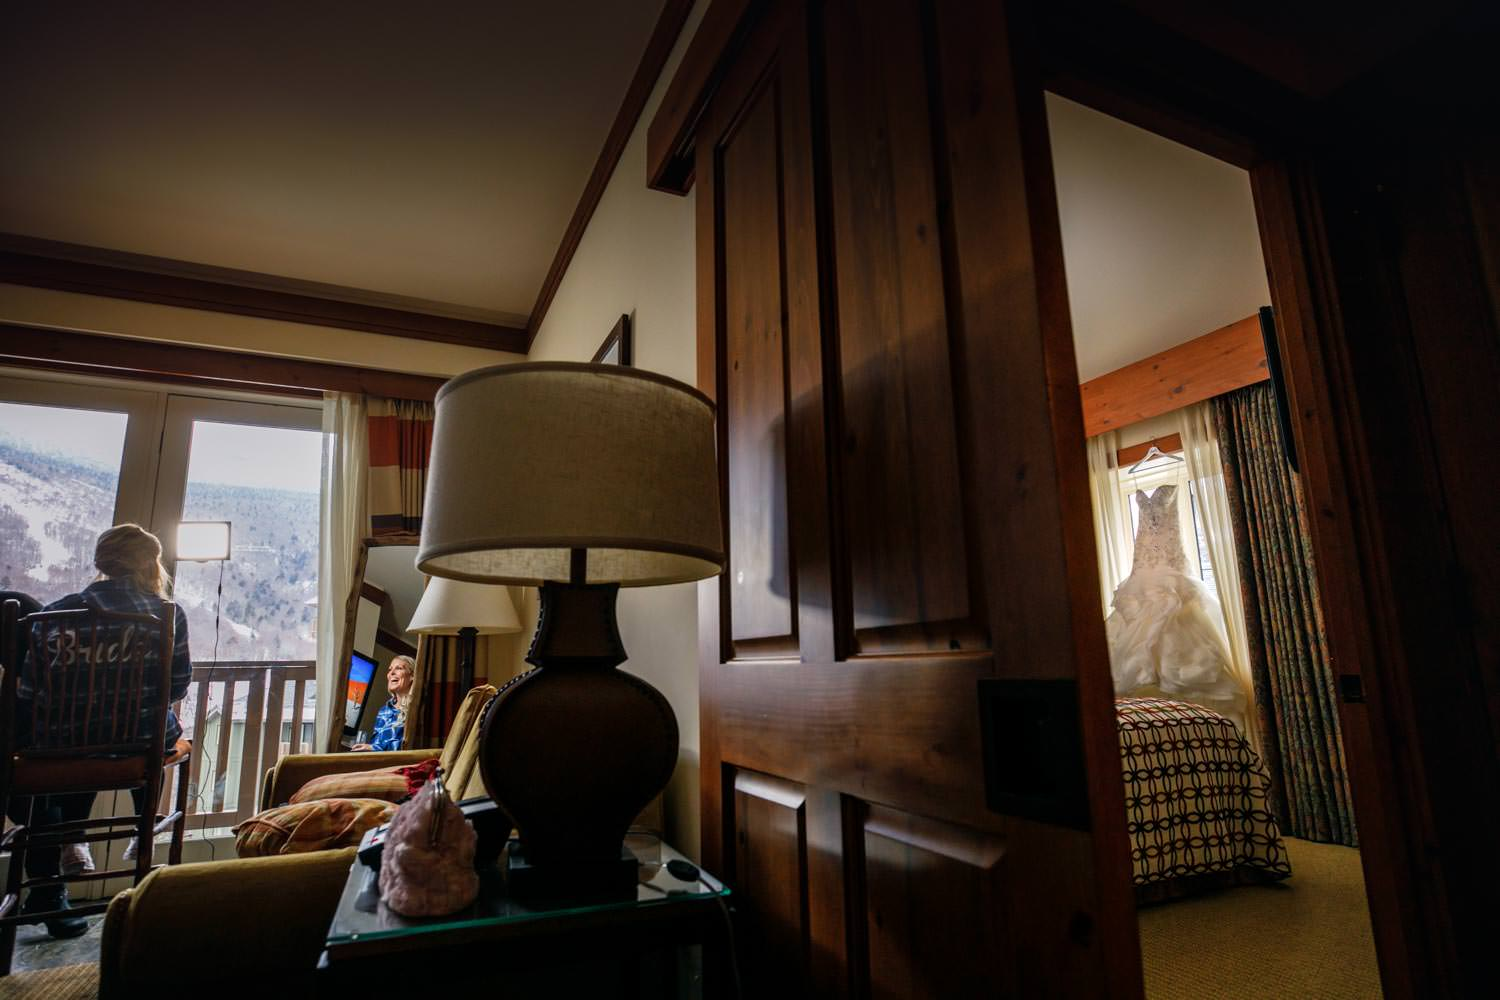 wedding photographer captures brides getting hair and makeup in bridal suite at stowe mountain lodge vt